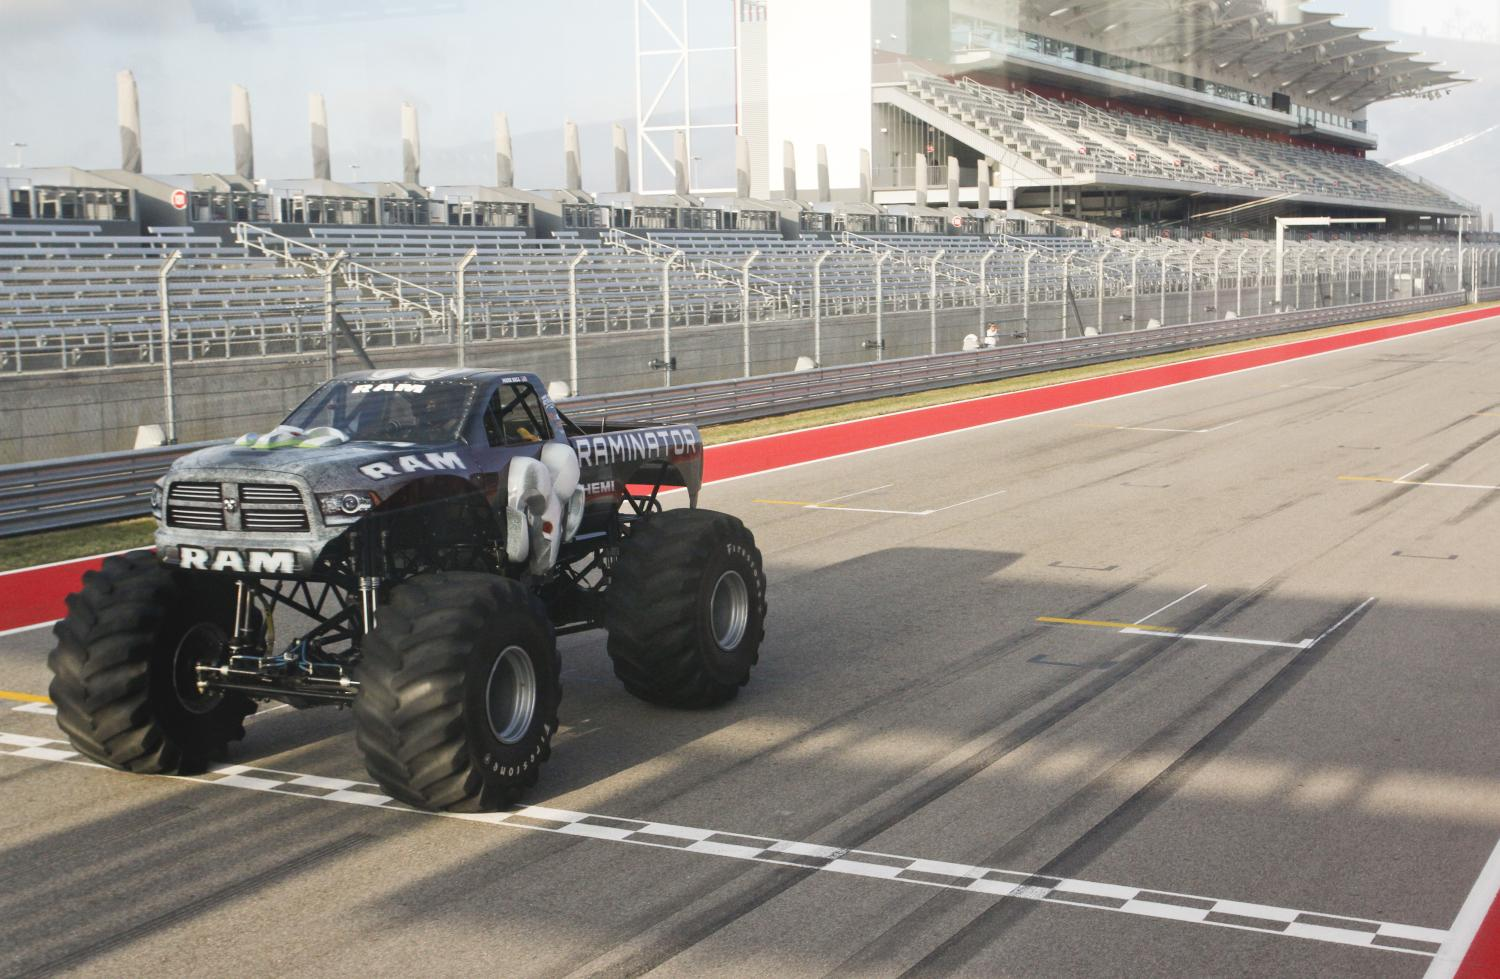 Auburn Hills, Mich. - Raminator, a monster truck sponsored by the Ram Truck brand, has broken the Guinness World Records® record for the